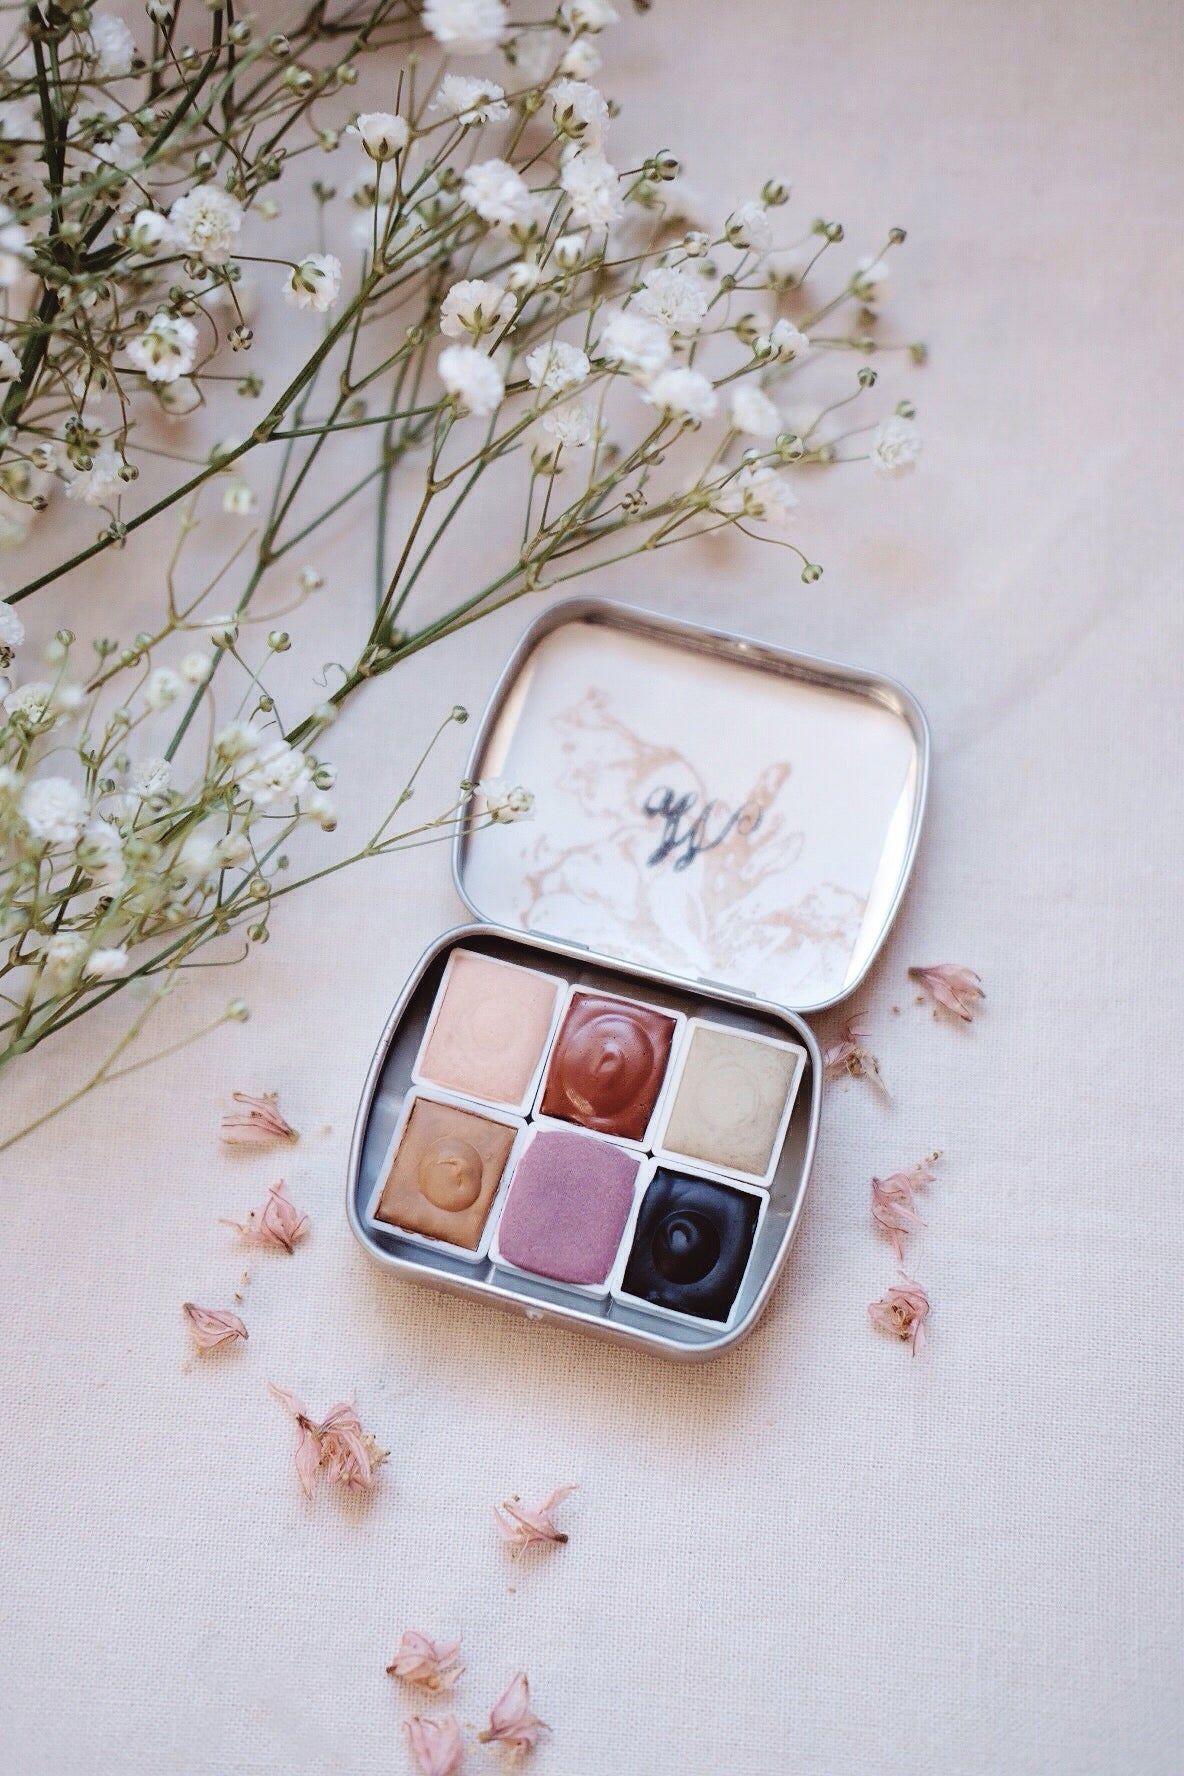 Foxtail Lily + Limited edition Gemstone Earth Mineral watercolor palette